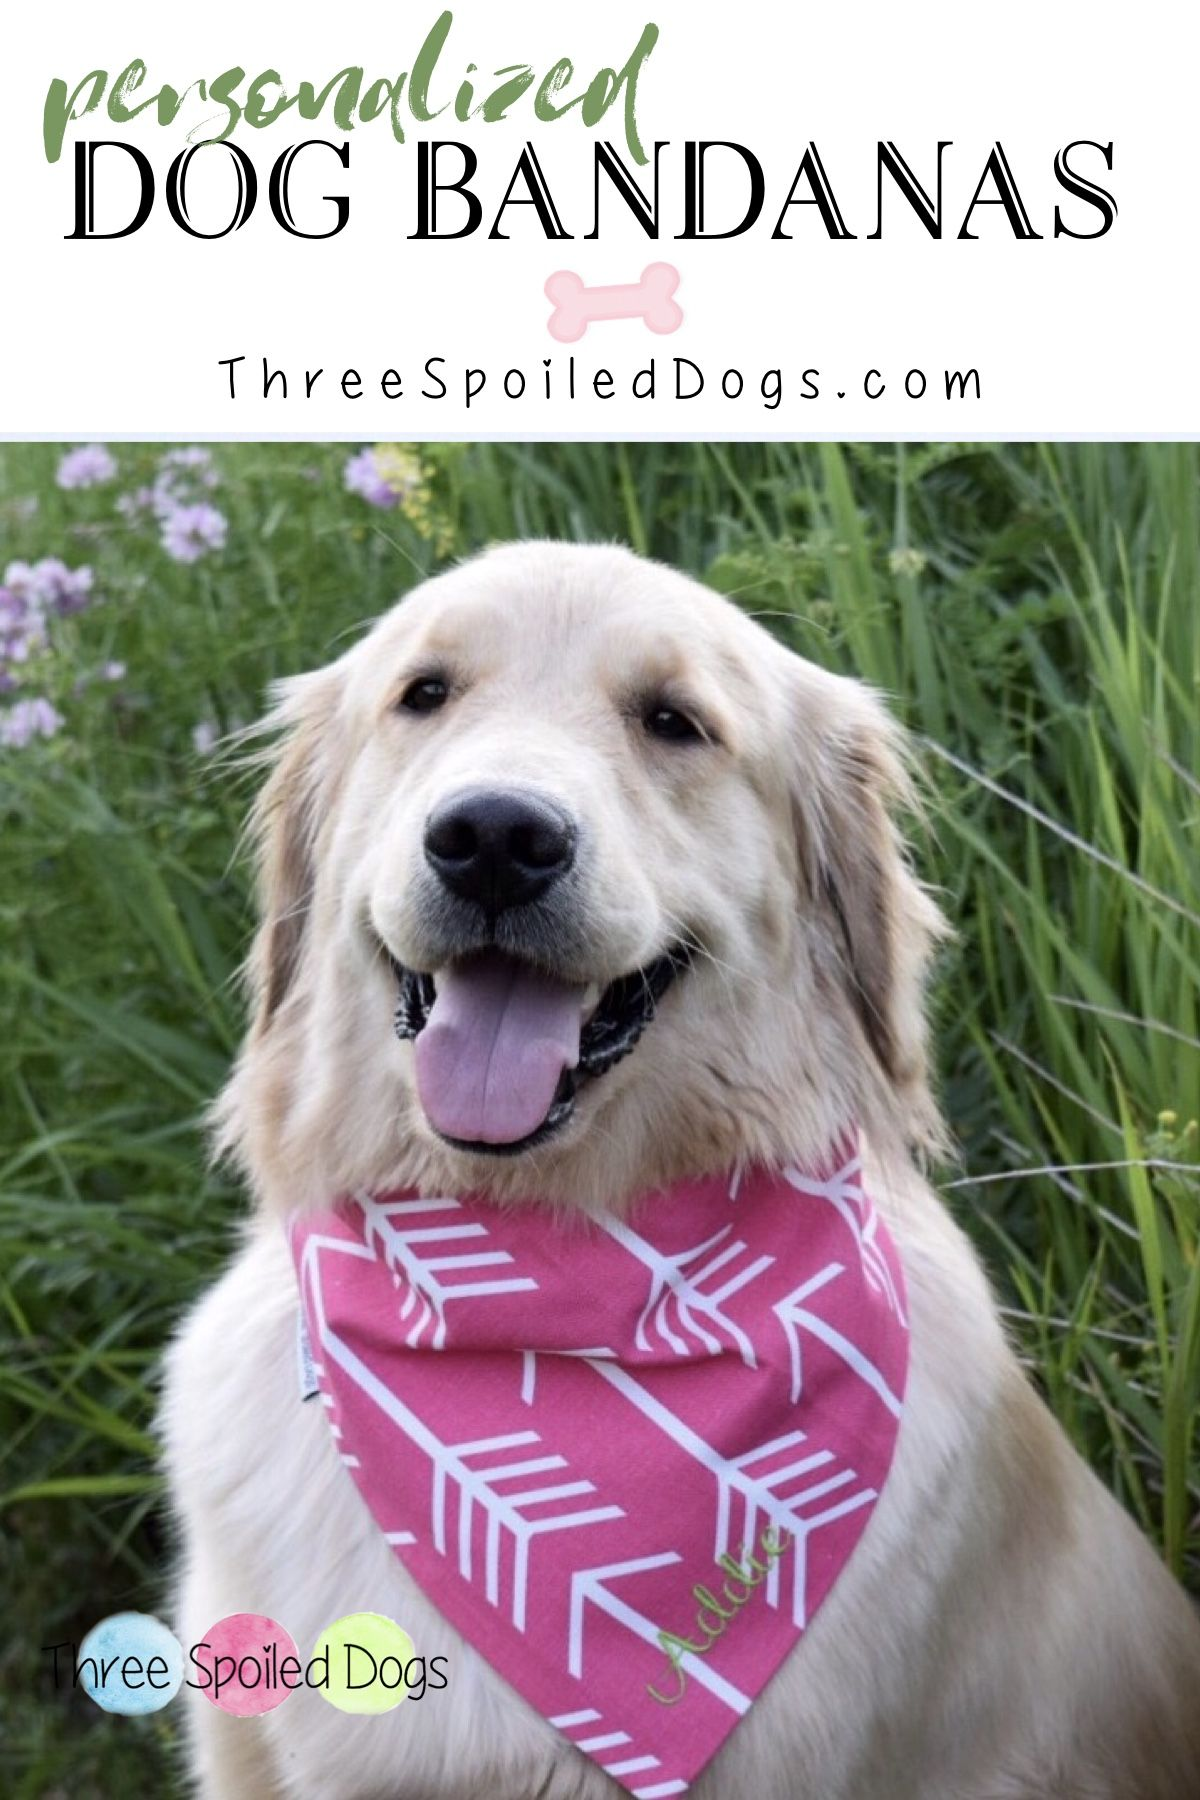 Personalized Dog Bandanas For Your Precious Furbaby We Are A Dog